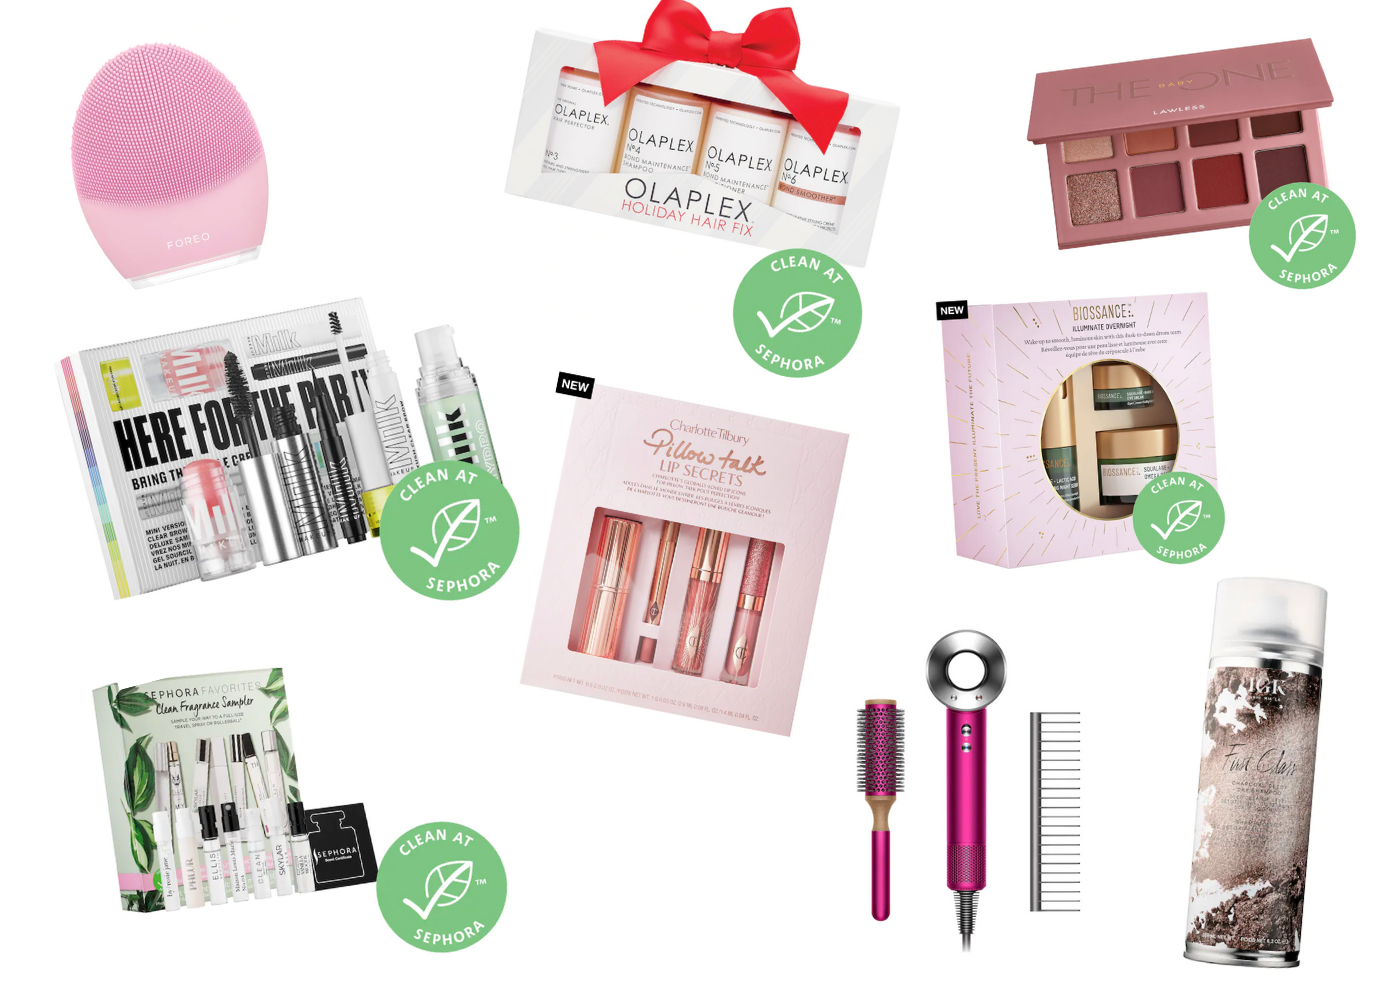 What to get from the sephora sale 2020 _ Foreo Luna, Olaplex, Lawless the baby one, biossance, sephora clean fragrance sampler